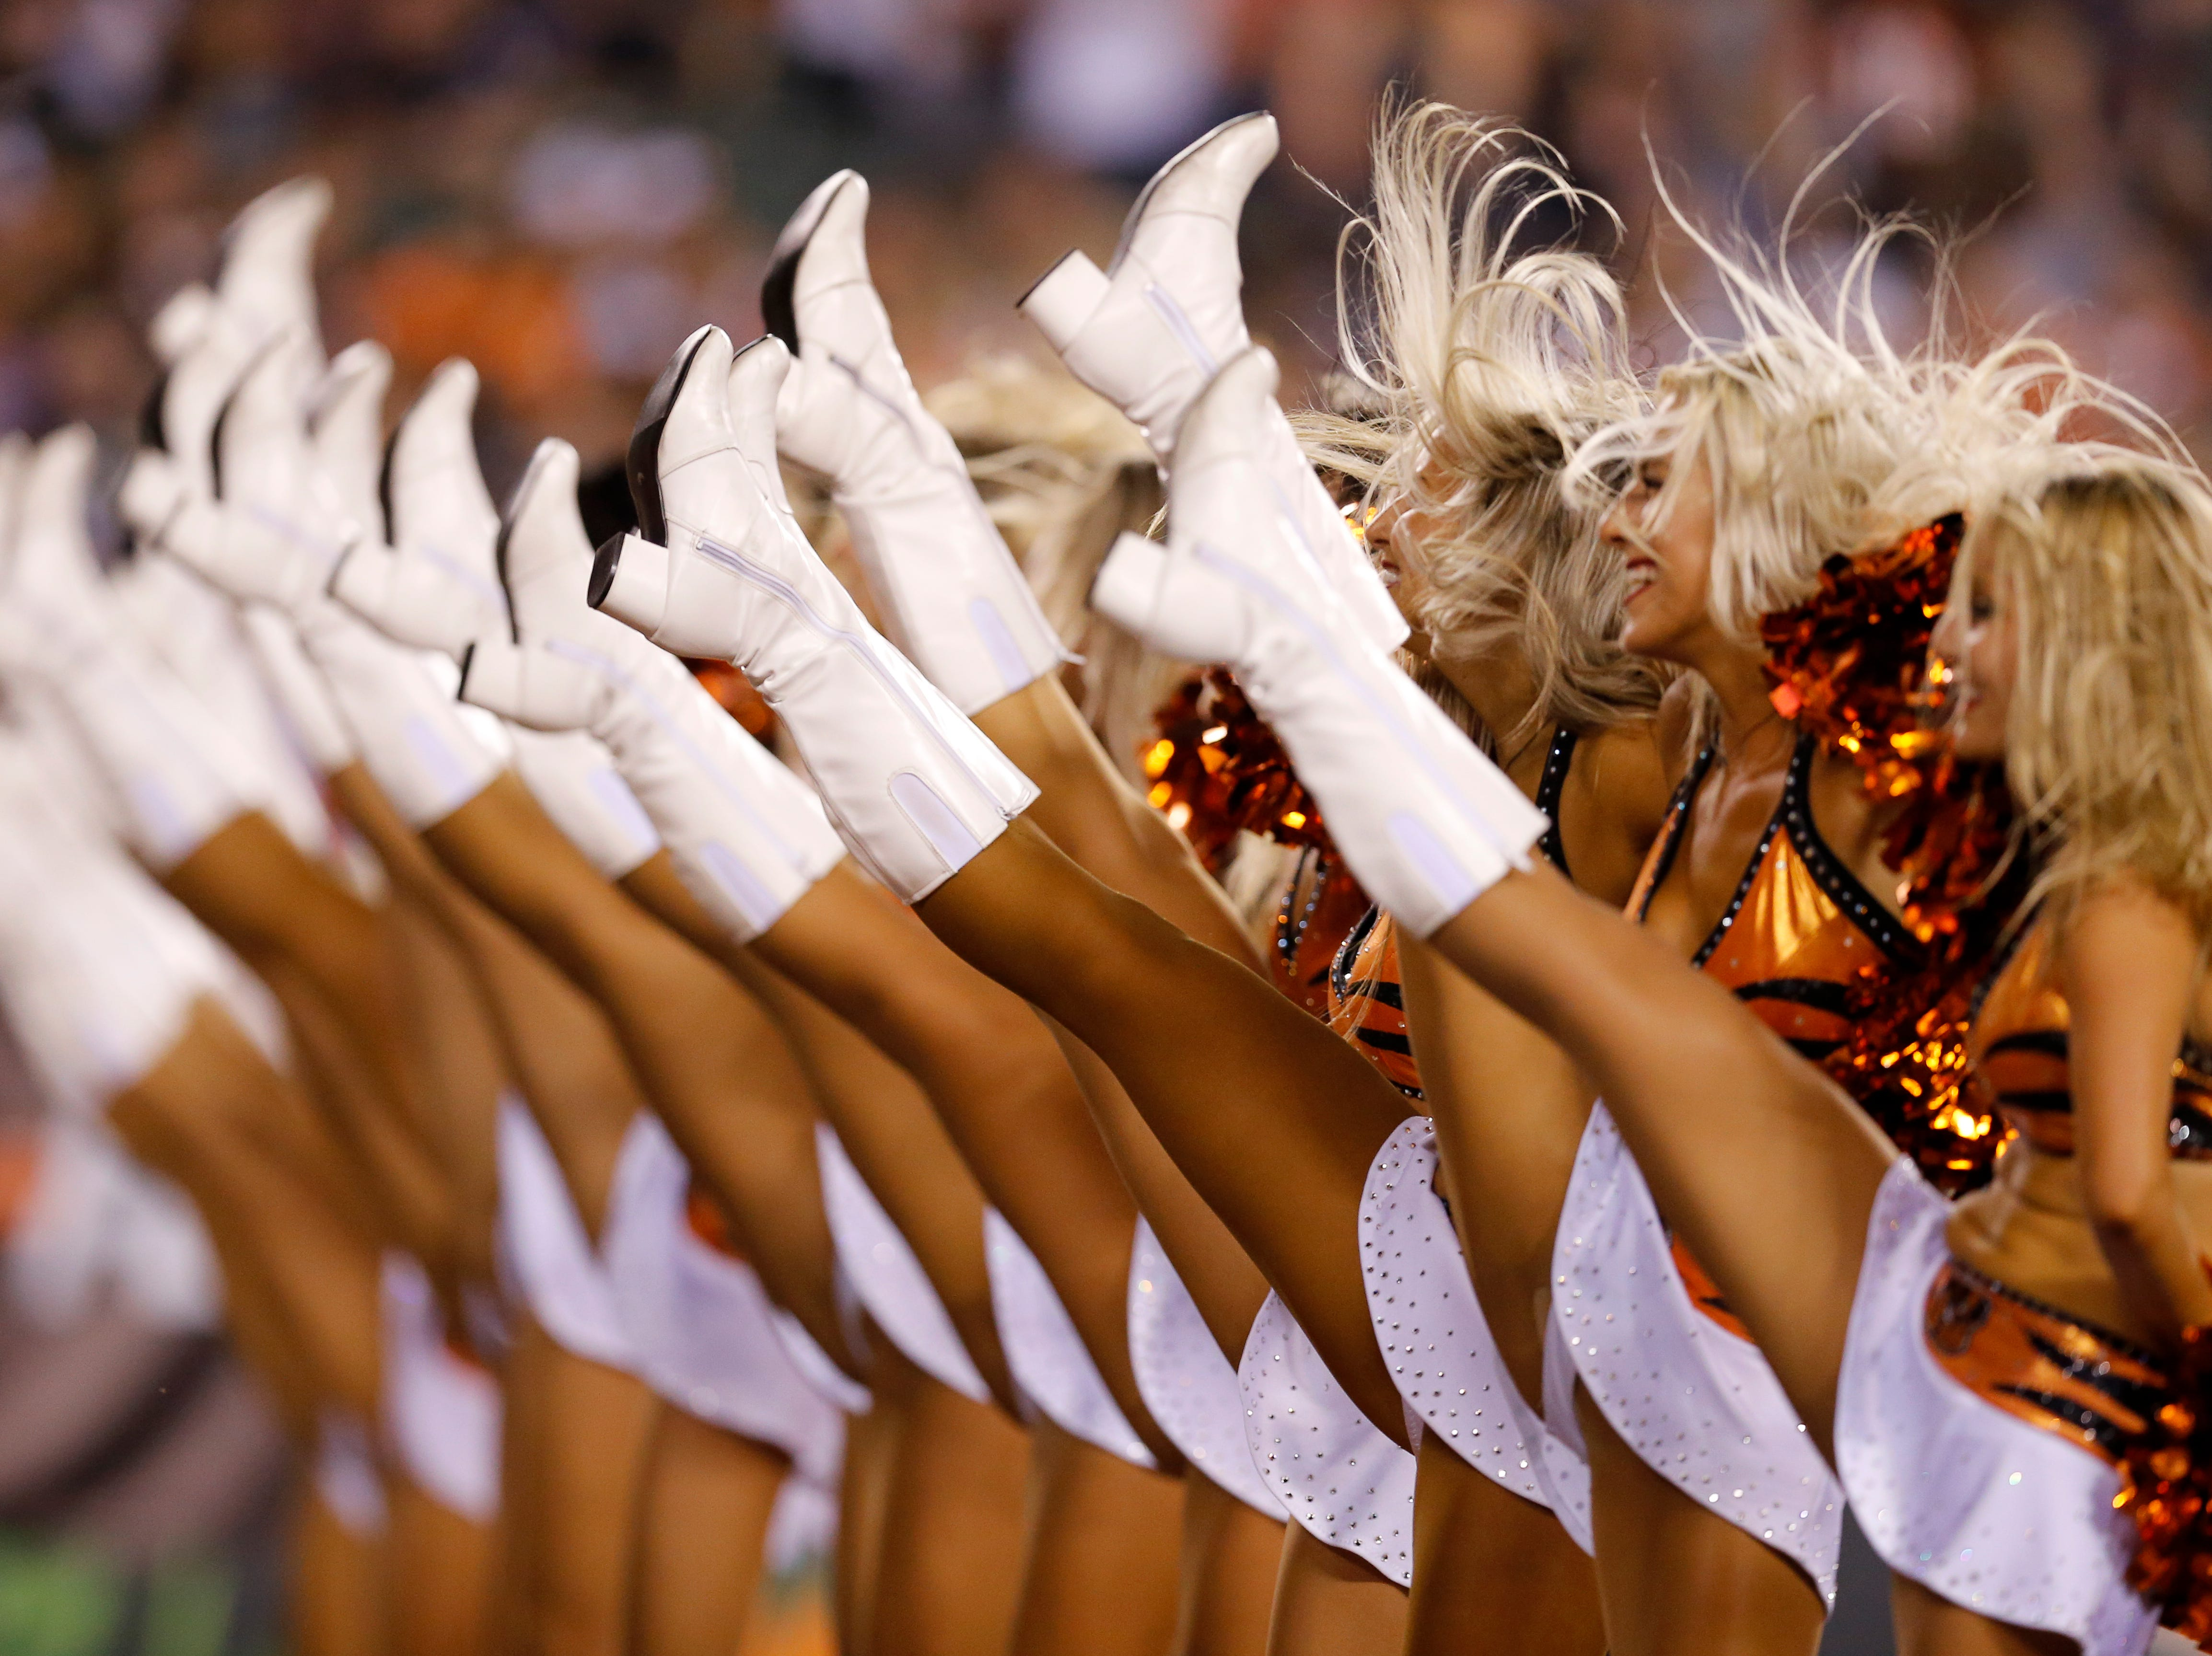 The Ben-Gals cheerleaders perform between the third and fourth quarters of the NFL Week 2 game between the Cincinnati Bengals and the Baltimore Ravens at Paul Brown Stadium in downtown Cincinnati on Thursday, Sept. 13, 2018. The Bengals improved to 2-0 on the season with a 34-23 win over the Ravens.